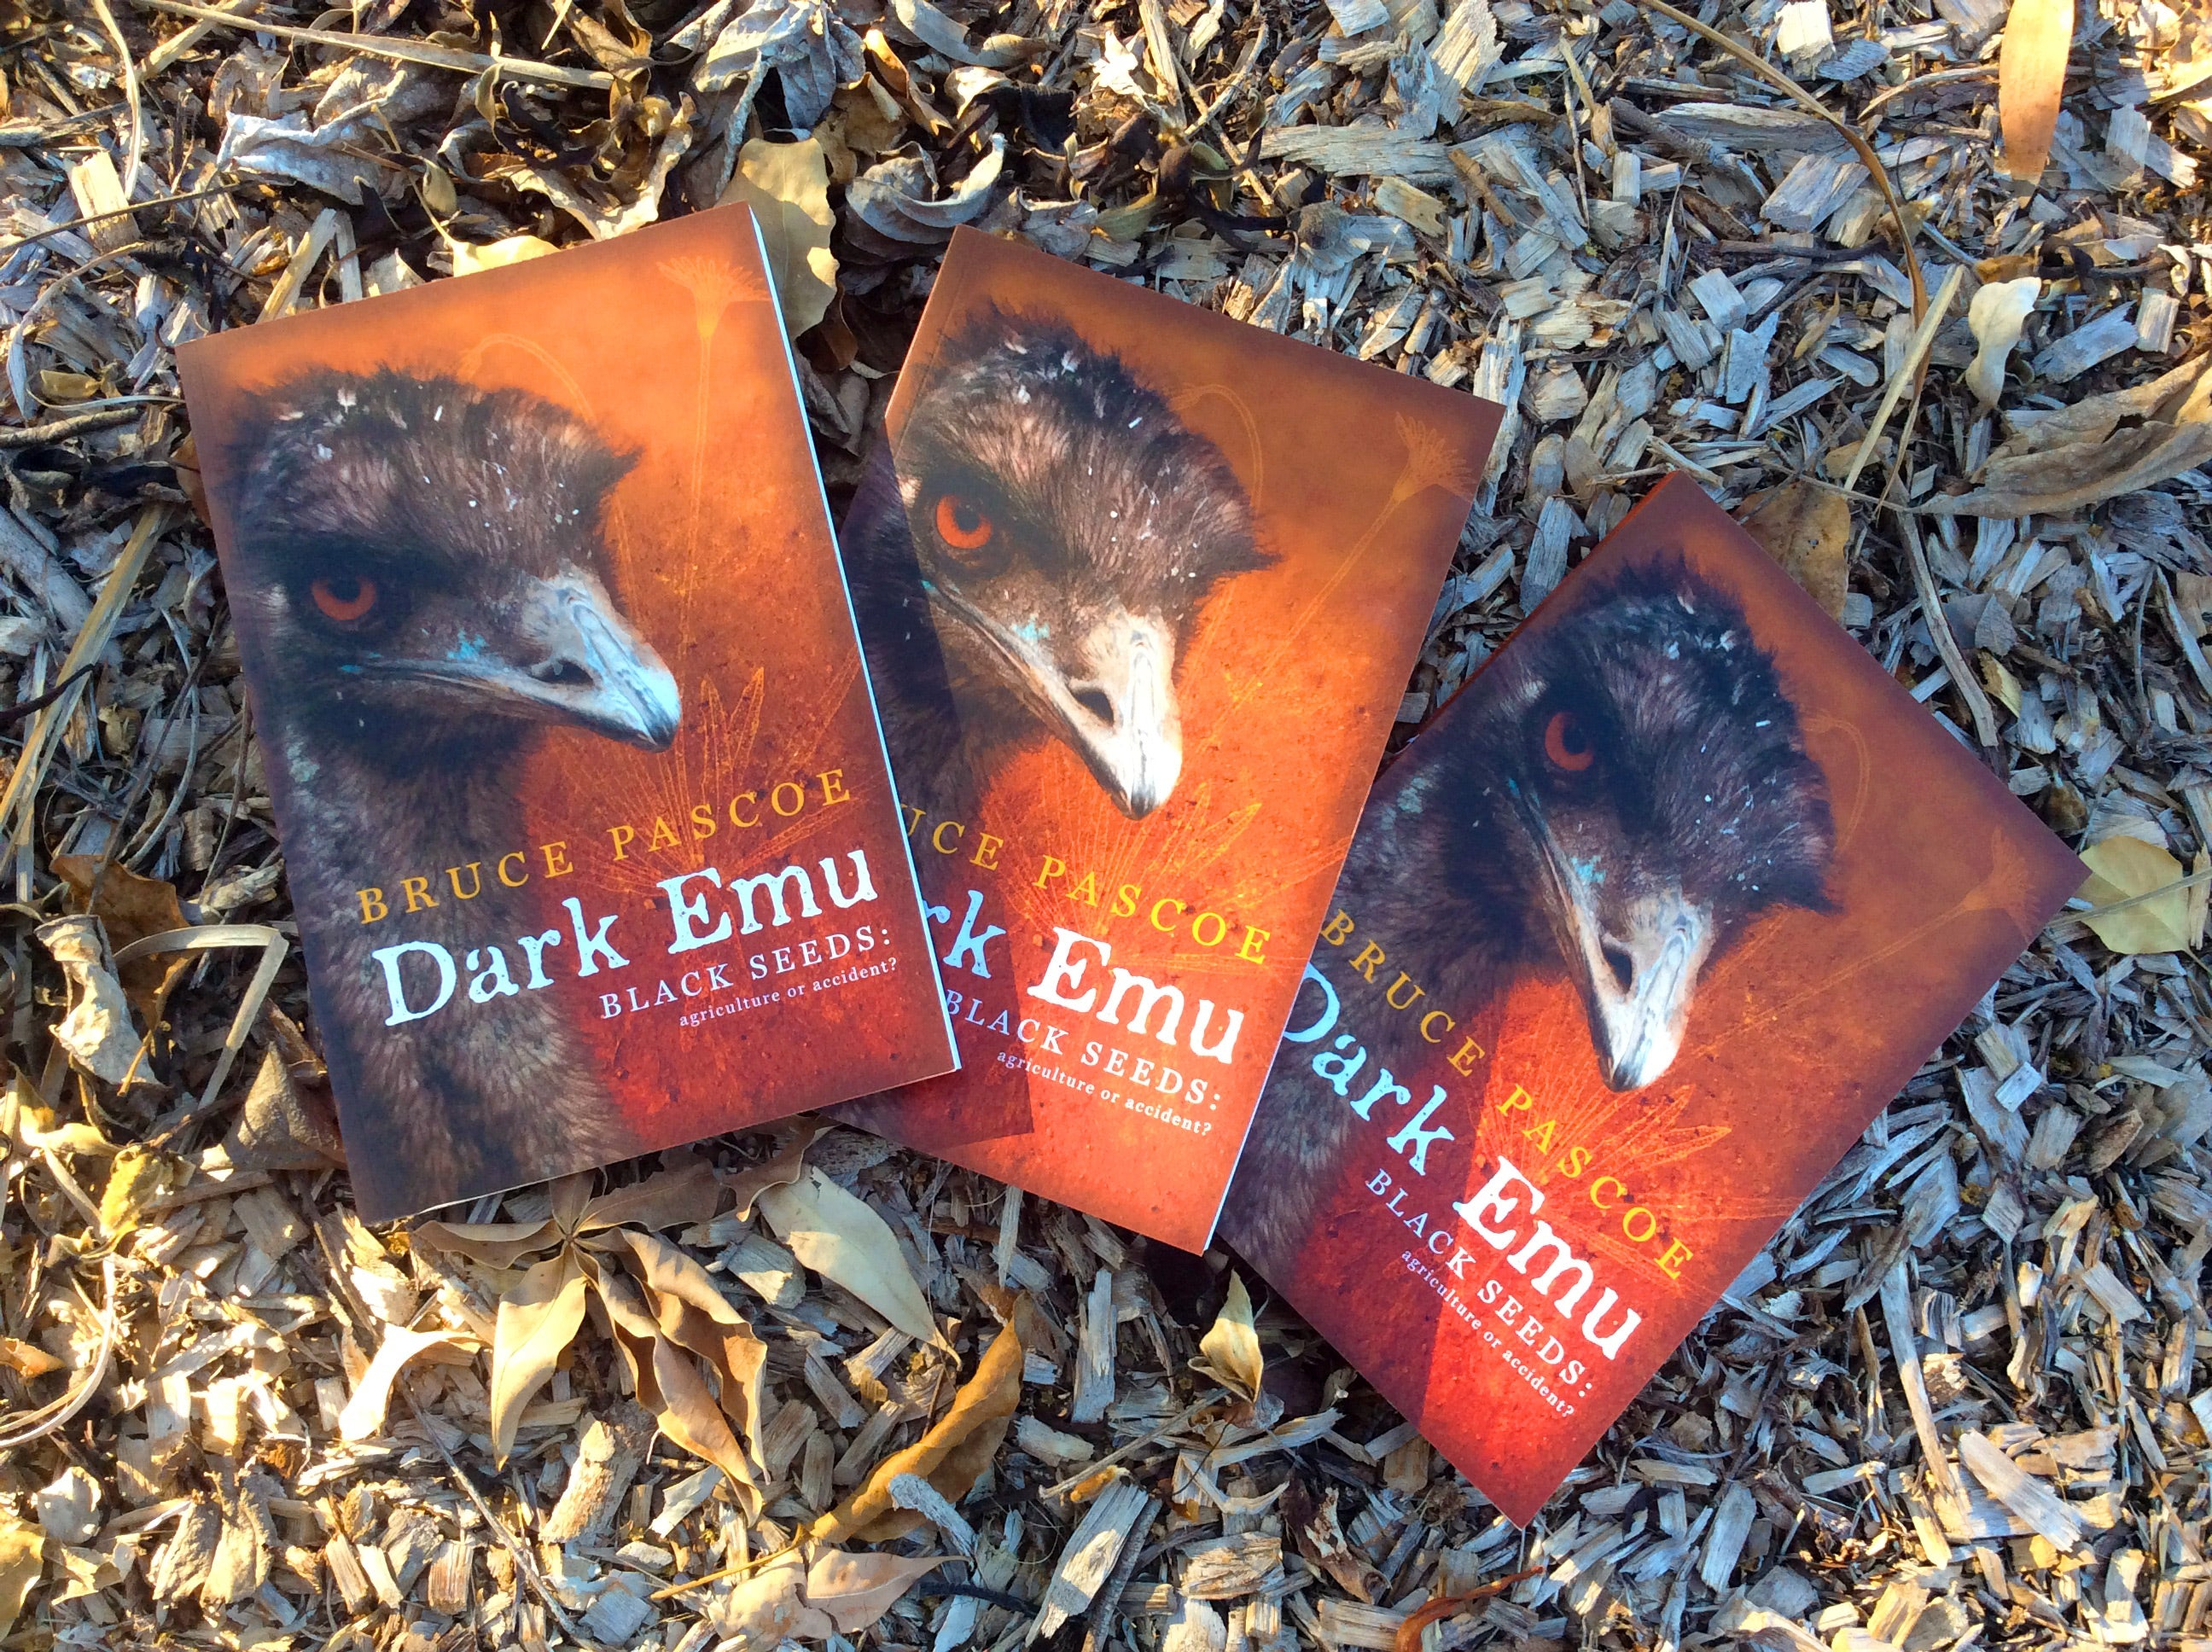 Dark Emu shortlisted in 2016 NSW Premier's Literary Awards